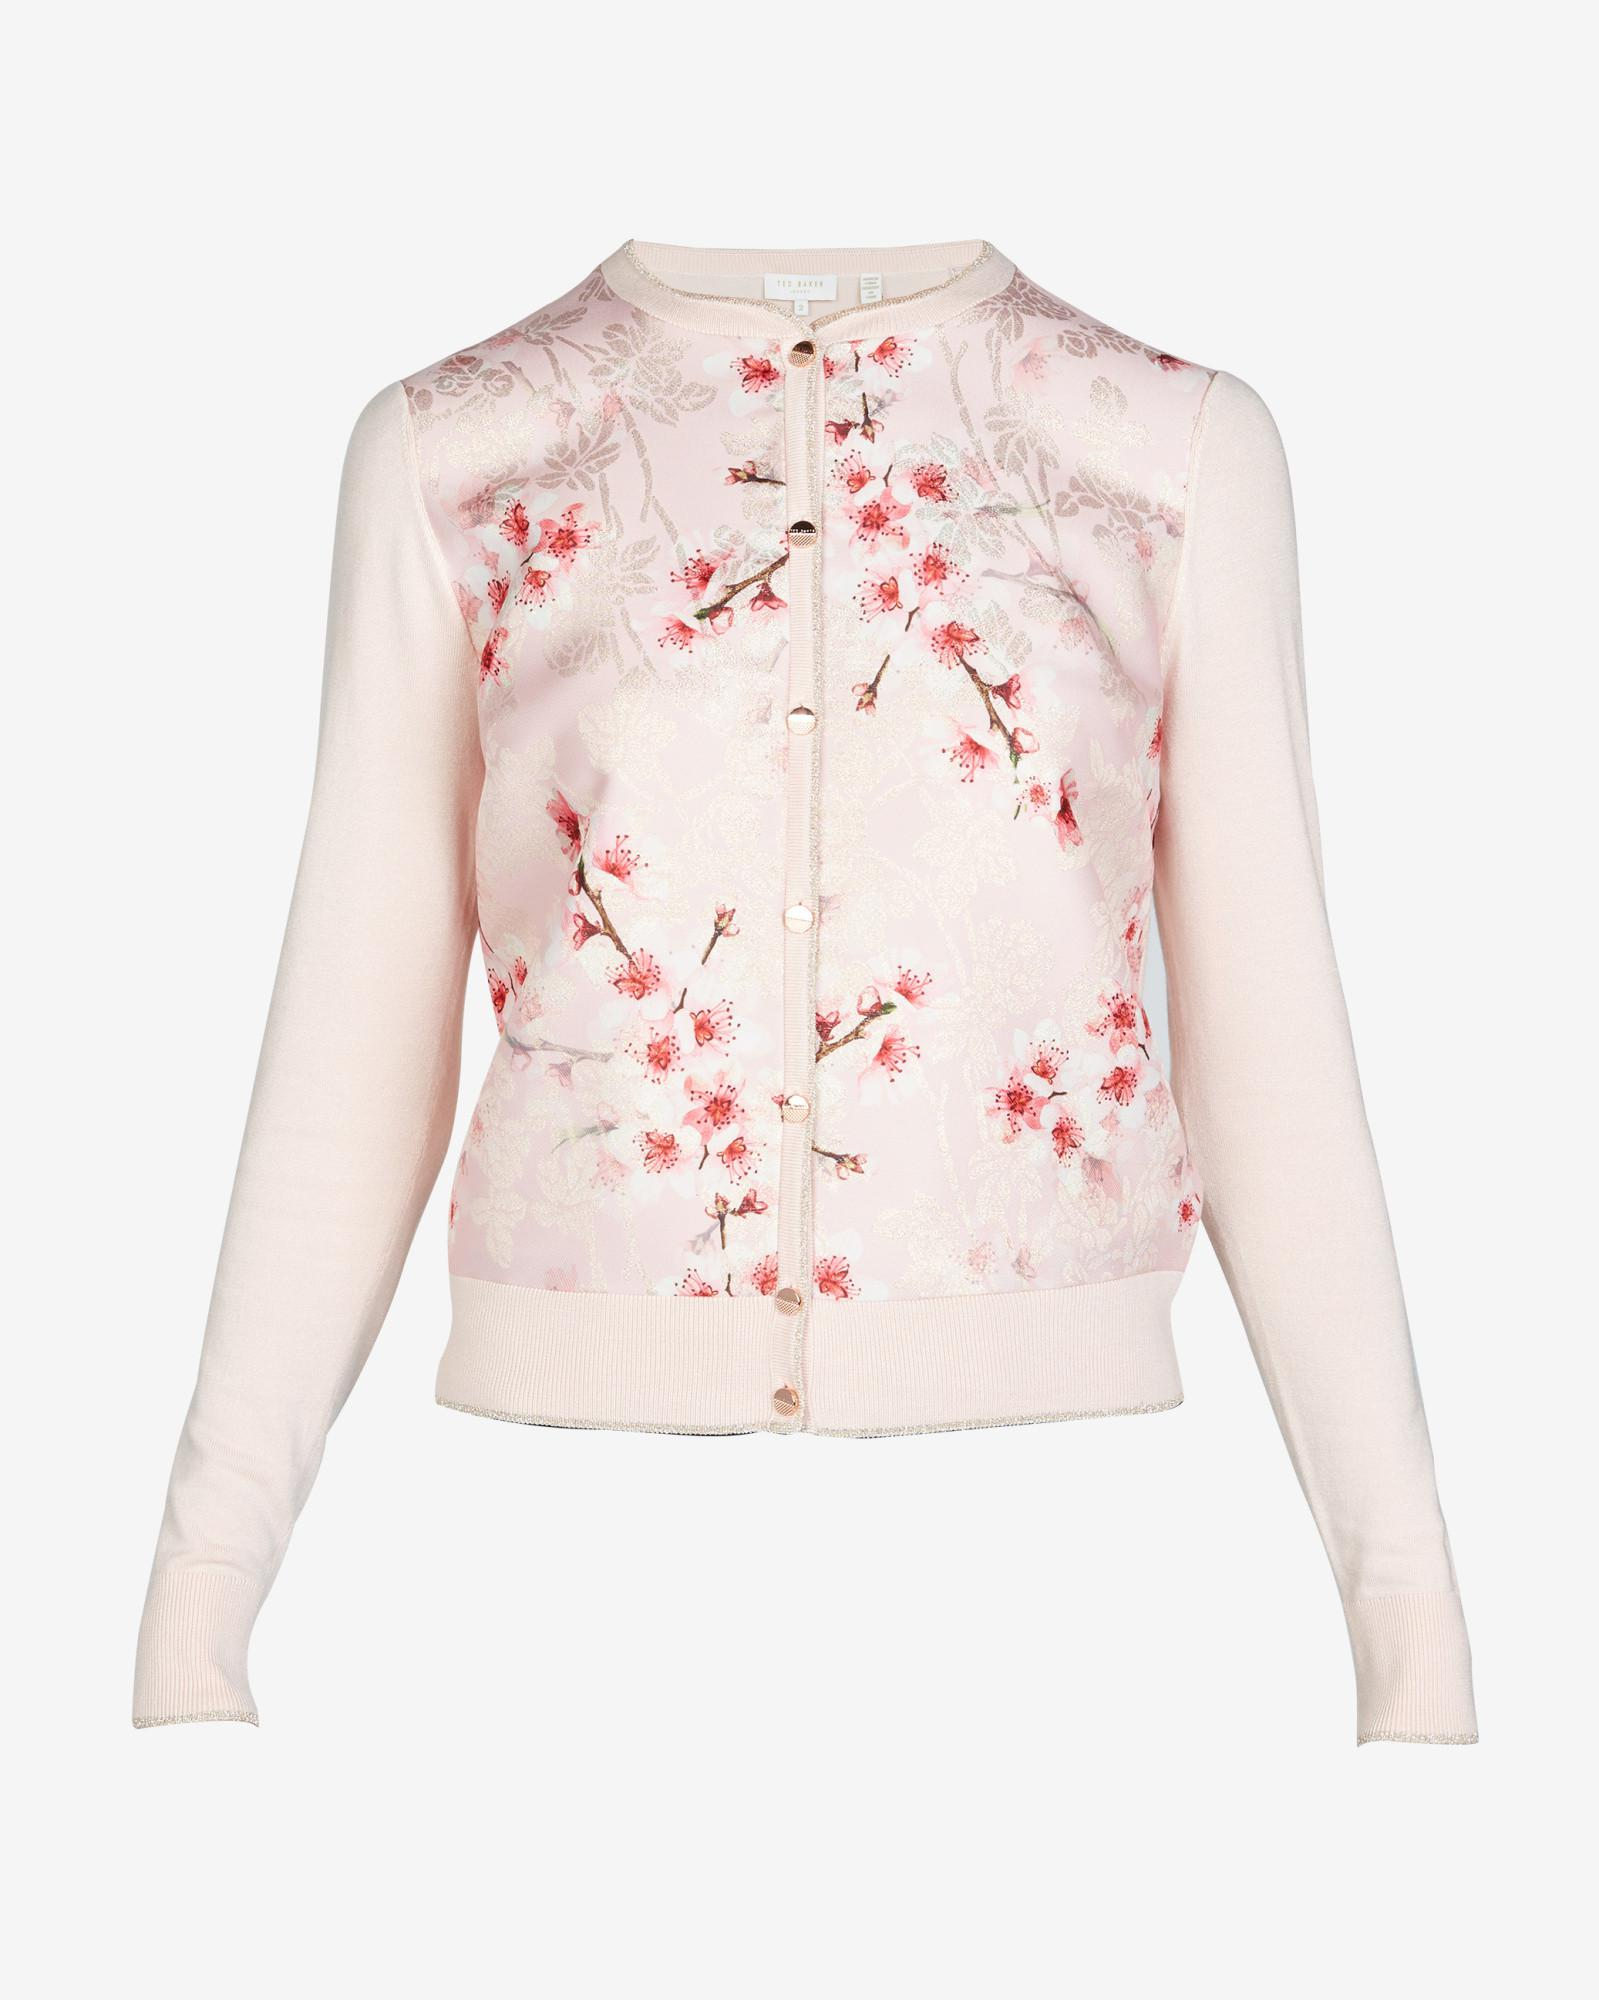 007be2319ac6ba Ted Baker Peach Blossom Jacquard Cardigan in Pink - Lyst